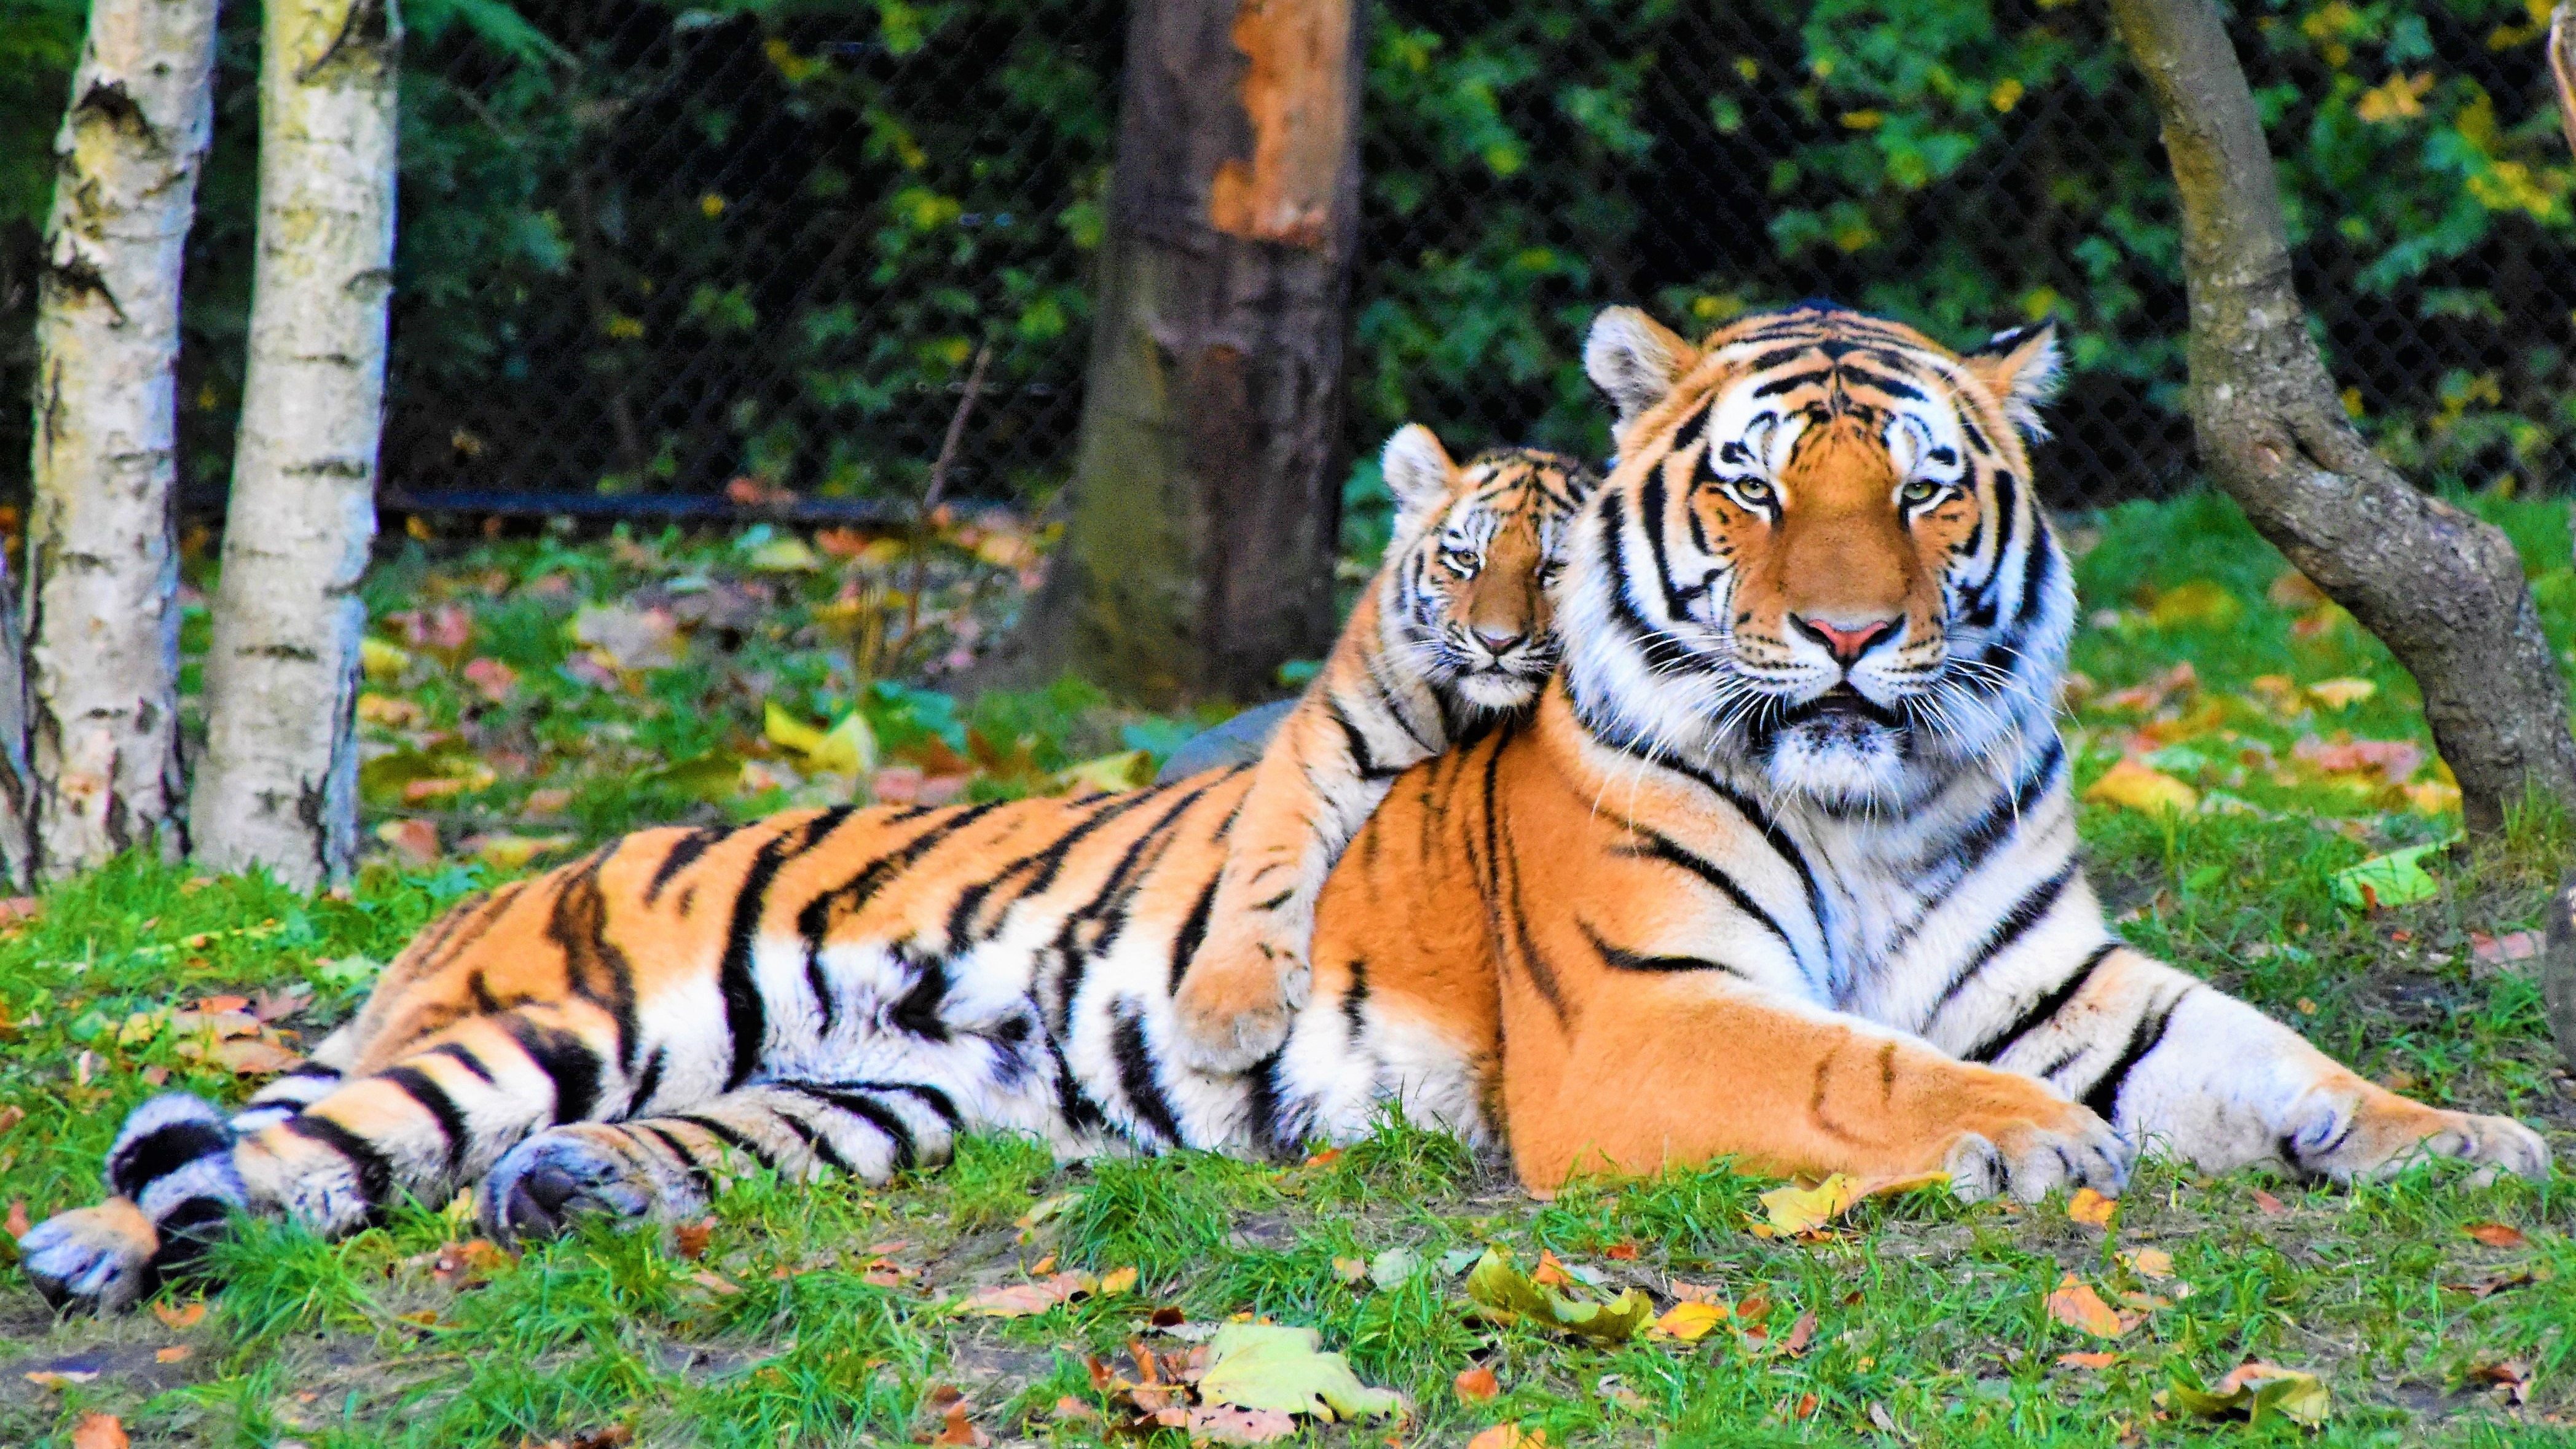 Photo of Tiger and Cub Lying Down on Grass · Free Stock Photo